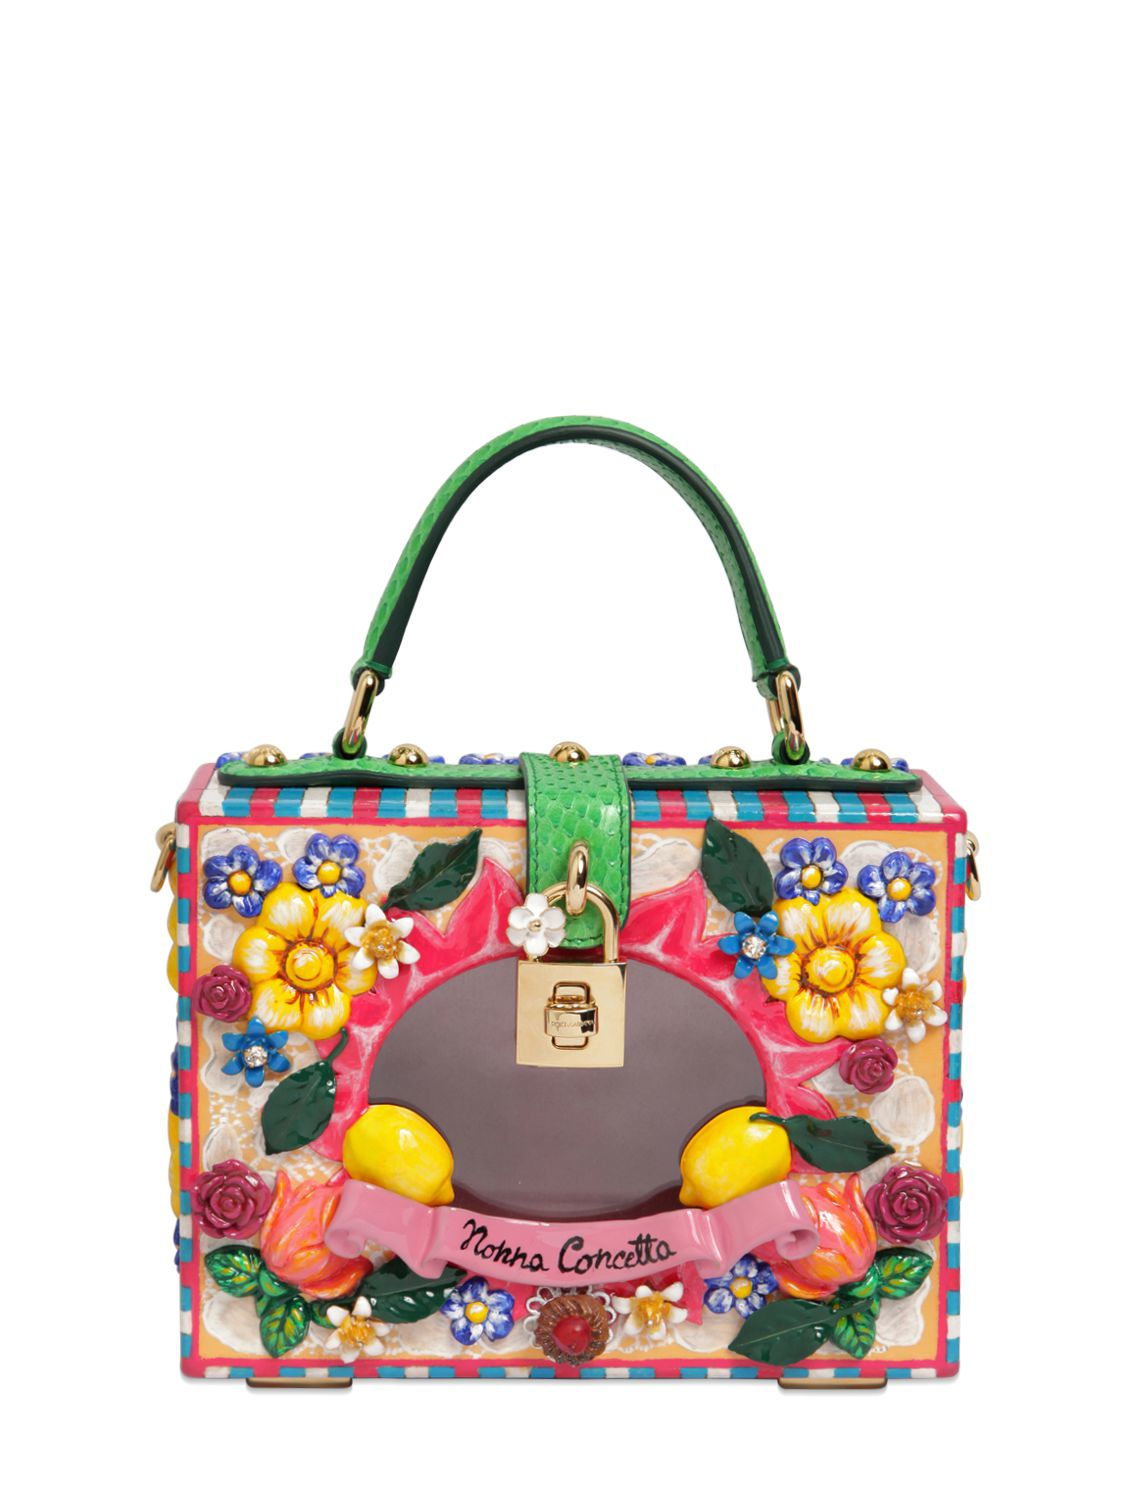 Lyst - Dolce   Gabbana Dolce Bag Nonna Concetta Wooden Bag in Green a4c5a605f9c4c